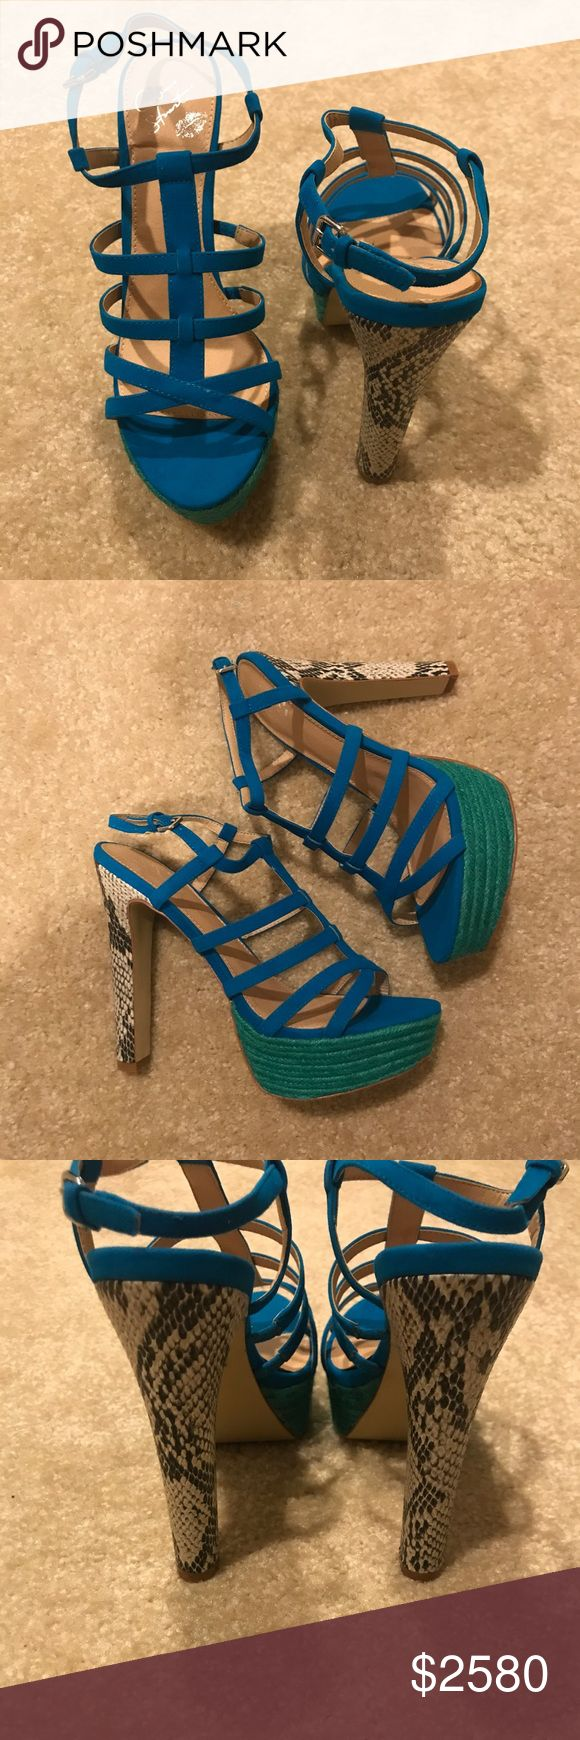 "NWT Colin Stuart Strappy Heels In Box - Size 8.5 BRAND NEW IN BOX, NEVER WORN Colin Stuart For Victoria's Secret Strappy Platform Heels -  These gorgeous sandals have electric blue straps in a cage-like design with an adjustable strap with silver buckle at ankle. Heel has a faux snakeskin pattern and teal platform is woven with a braided design.  Size 8.5  Heel Height: 5.5"" Platform: 1.5"" Colin Stuart Shoes Sandals"